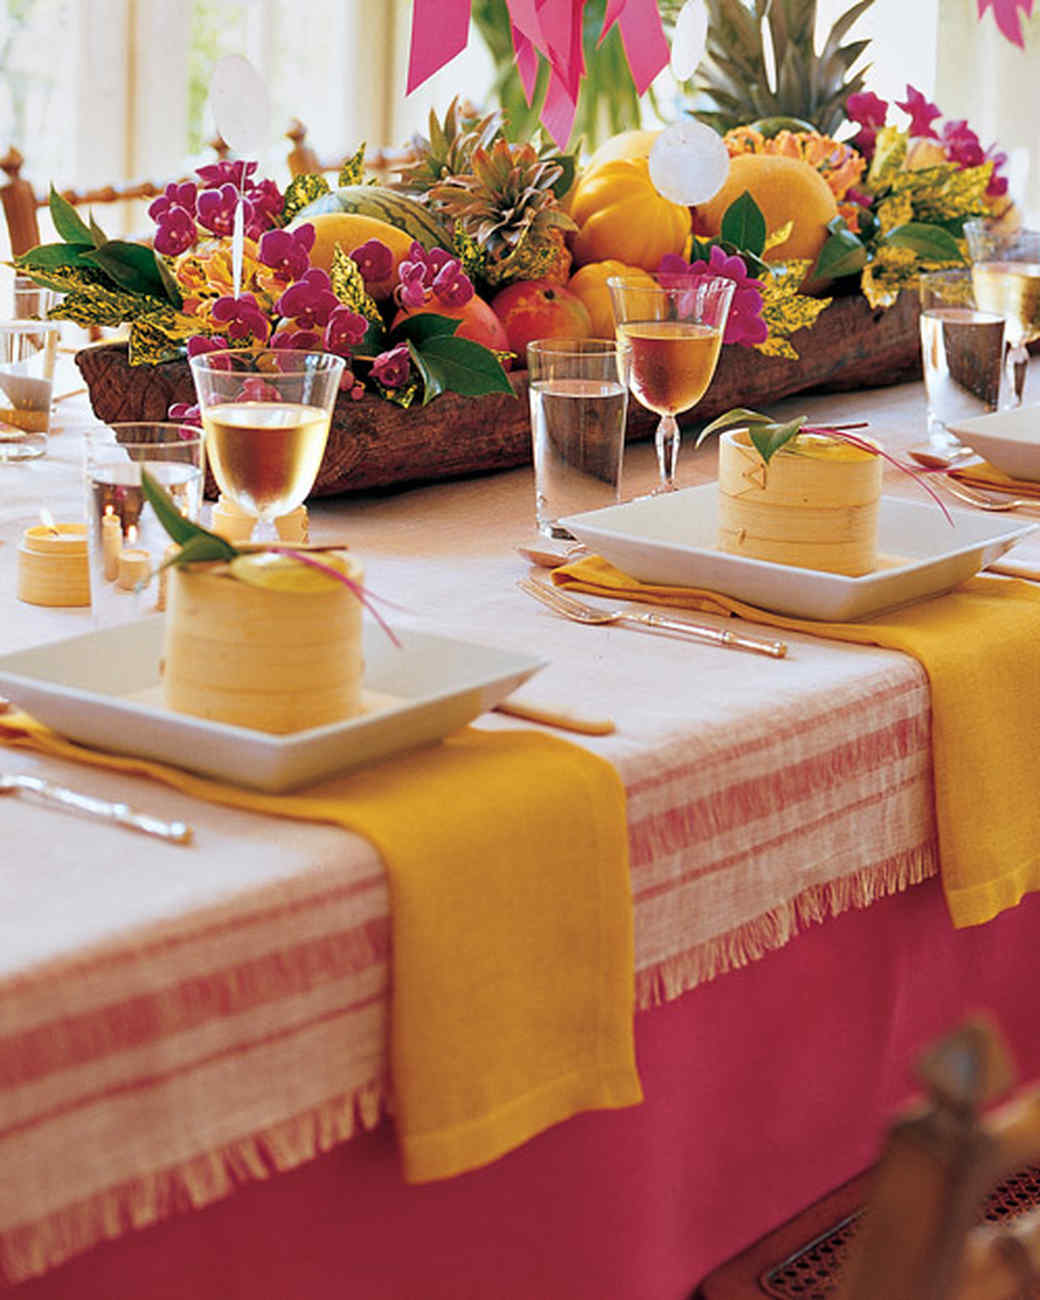 Tiki party ideas martha stewart for House table decorations